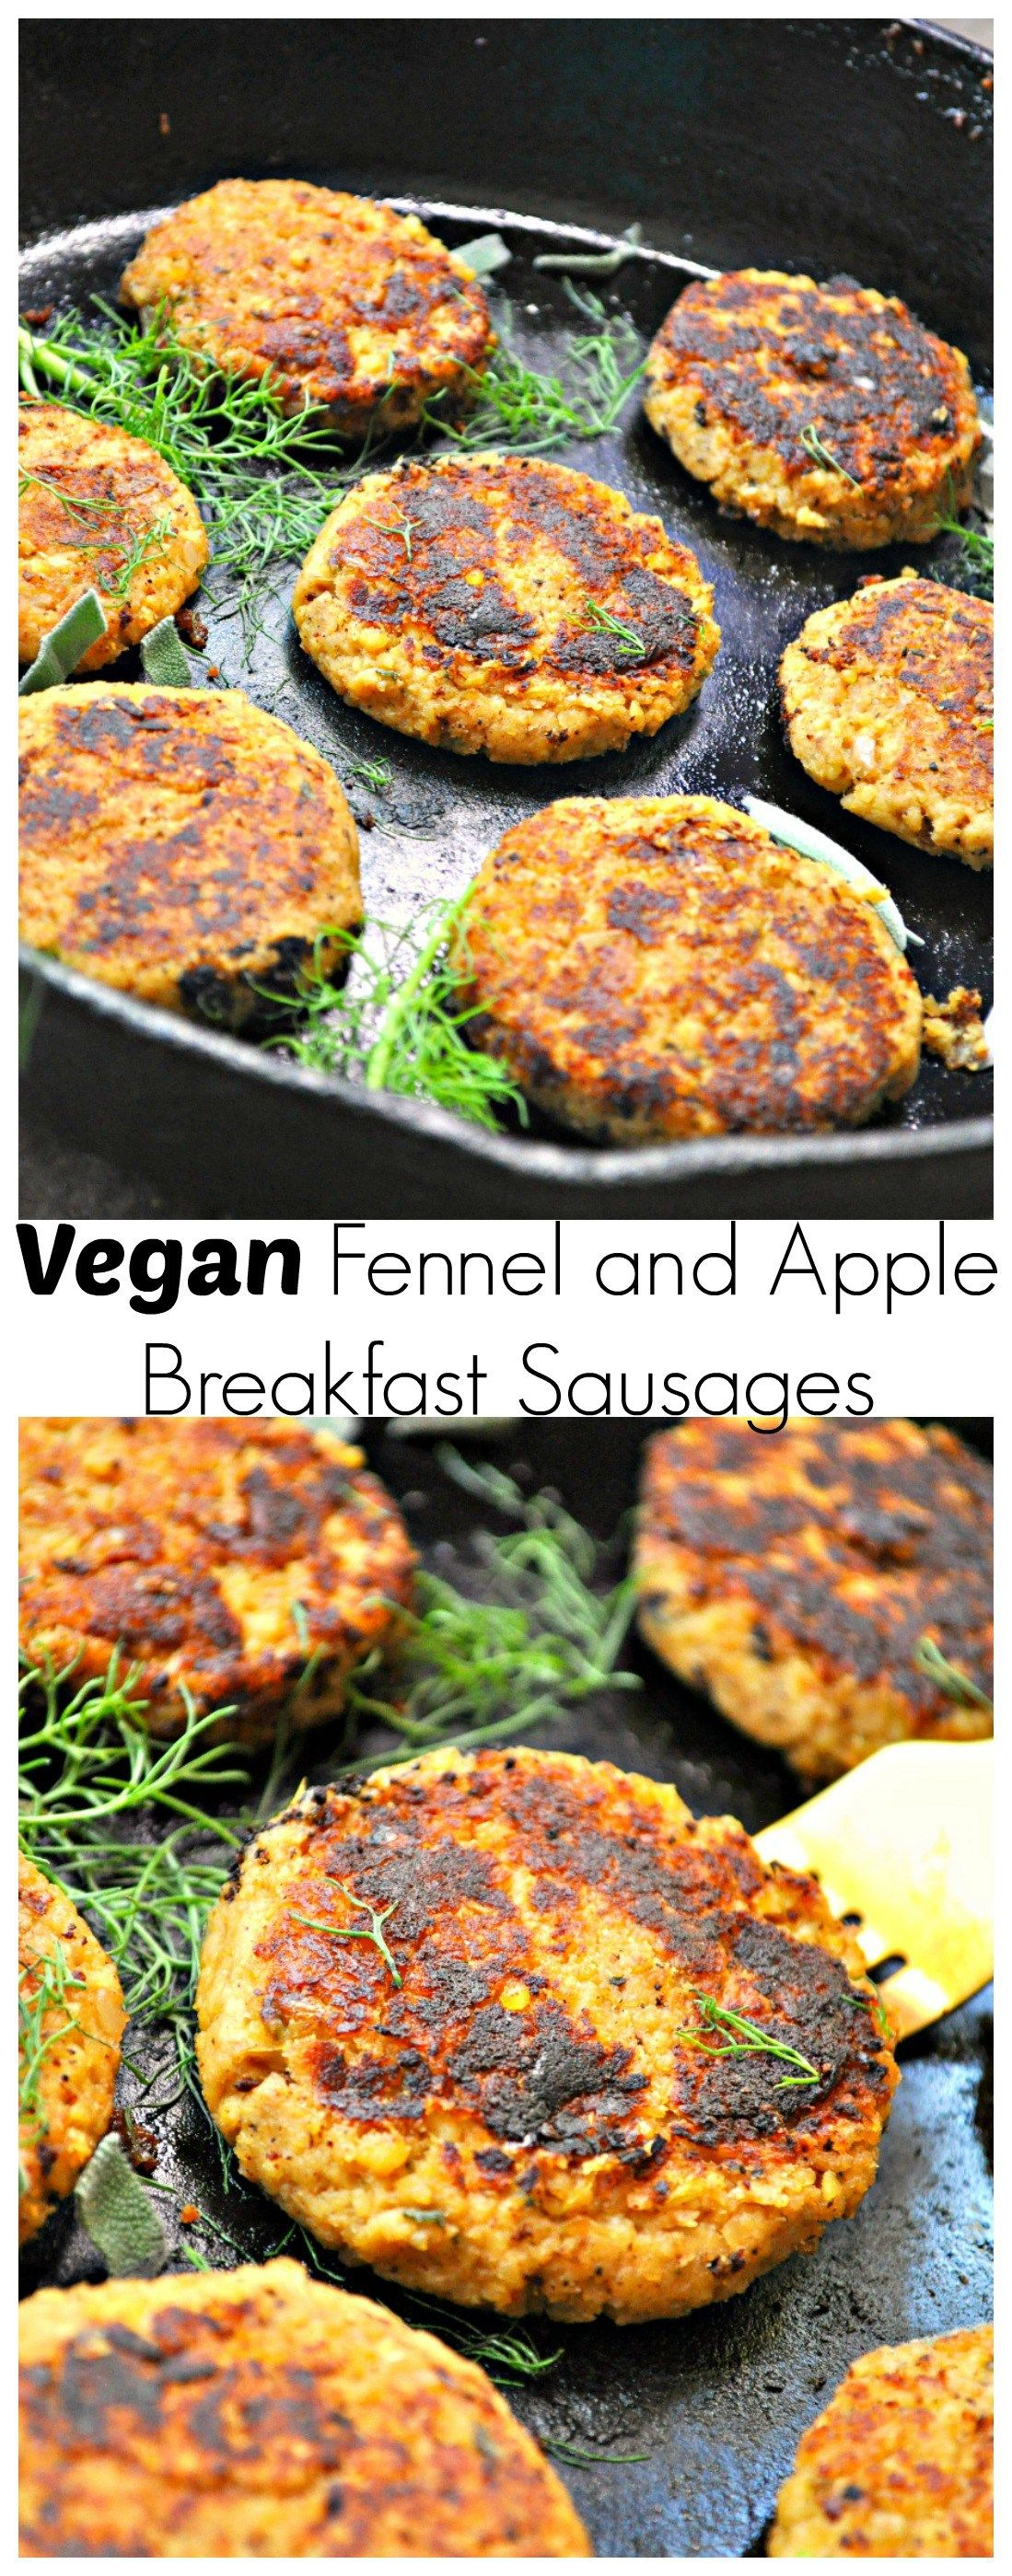 Vegan Fennel And Apple Breakfast Sausages